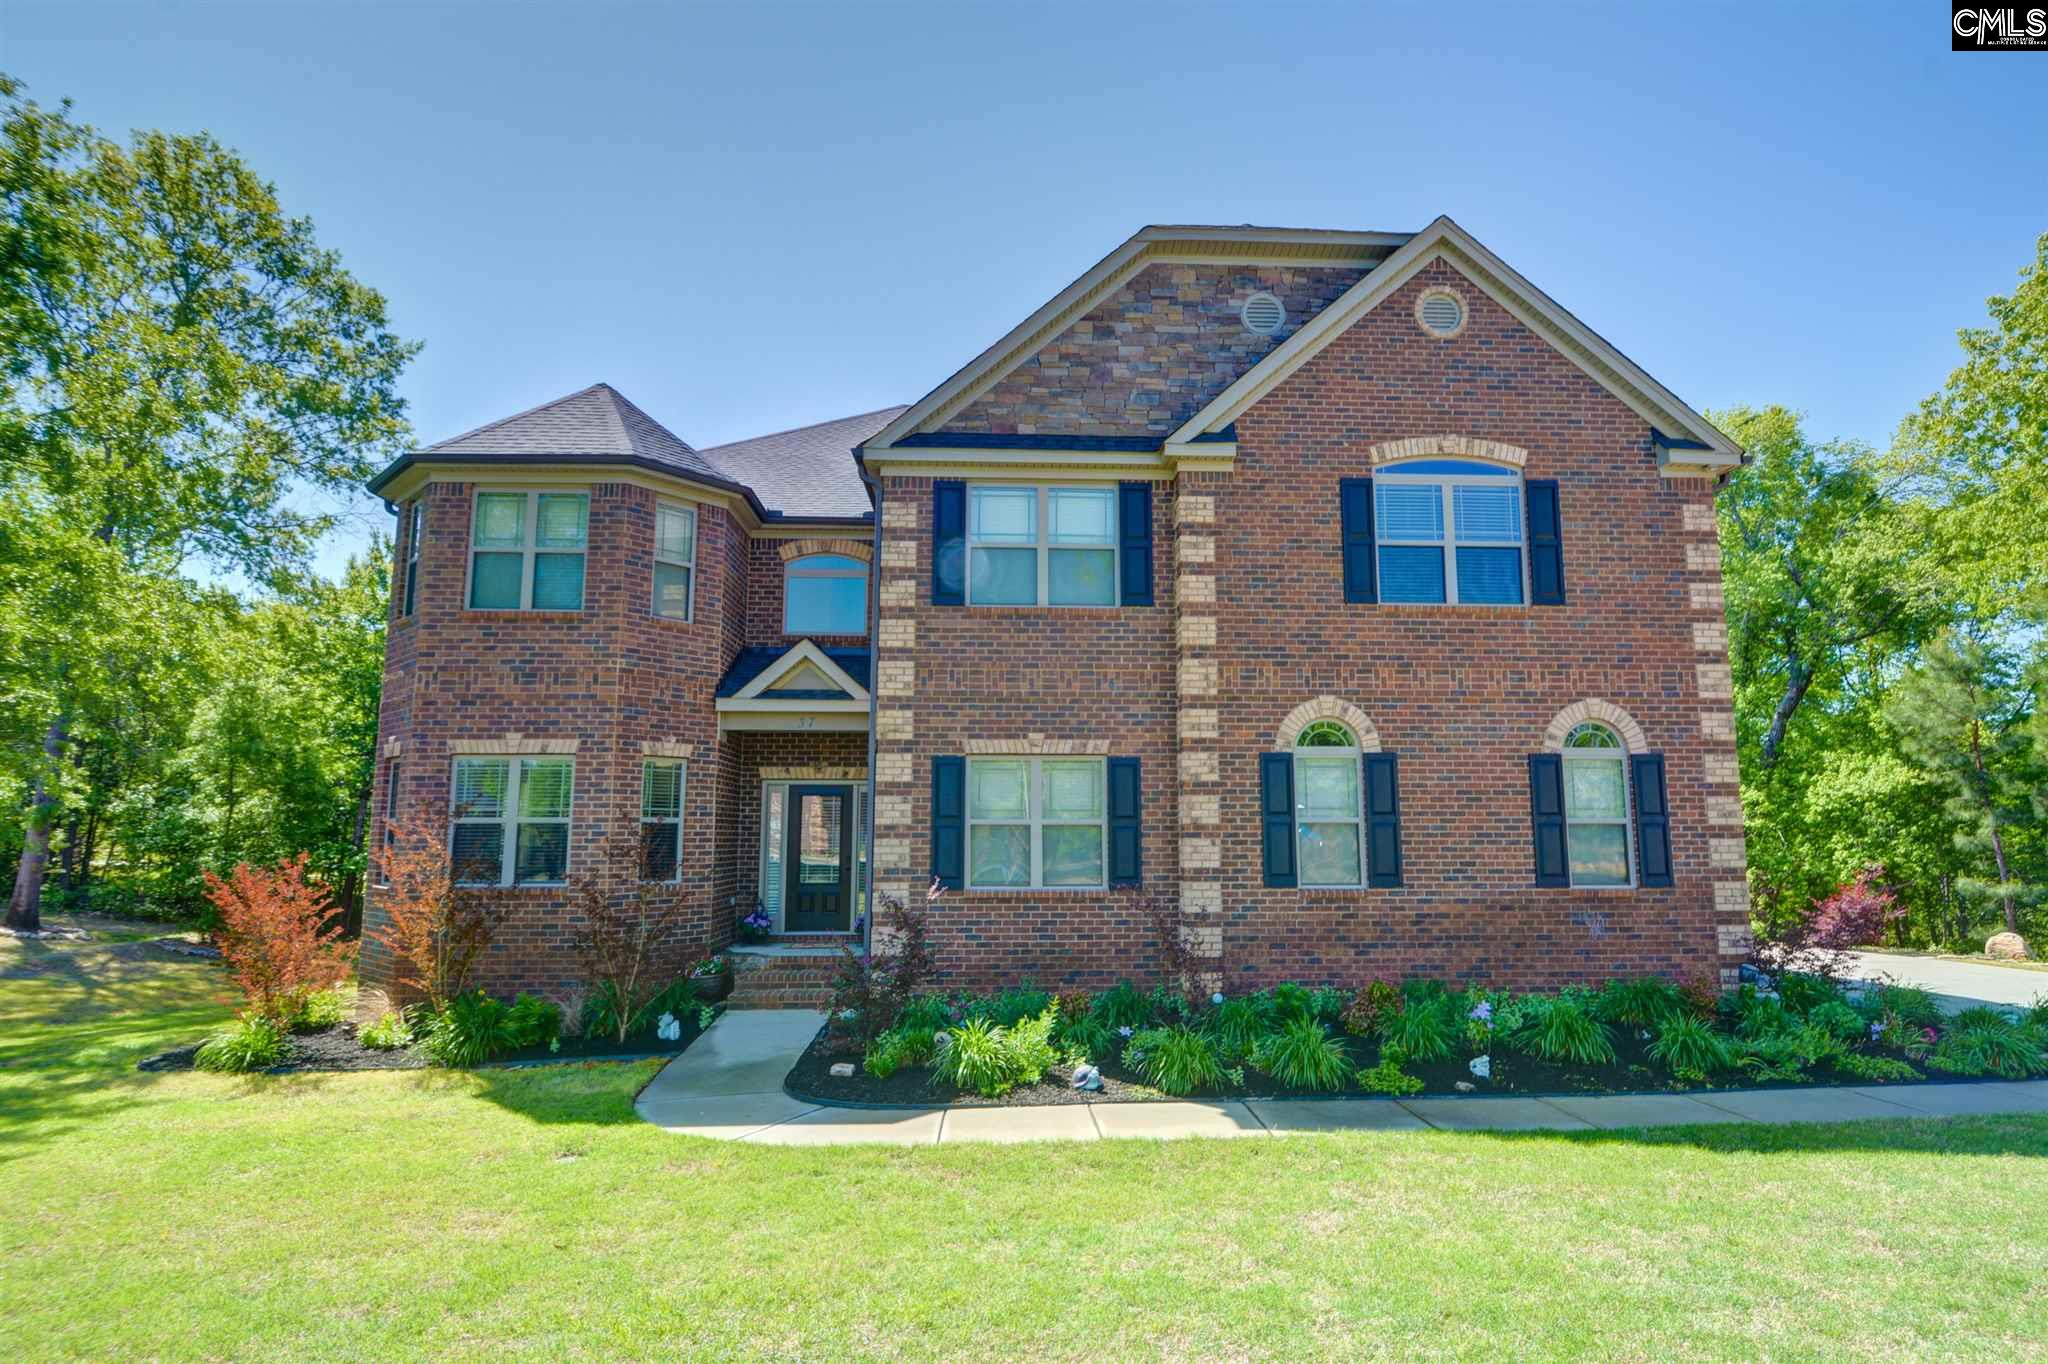 37 Bouchet, Columbia, South Carolina